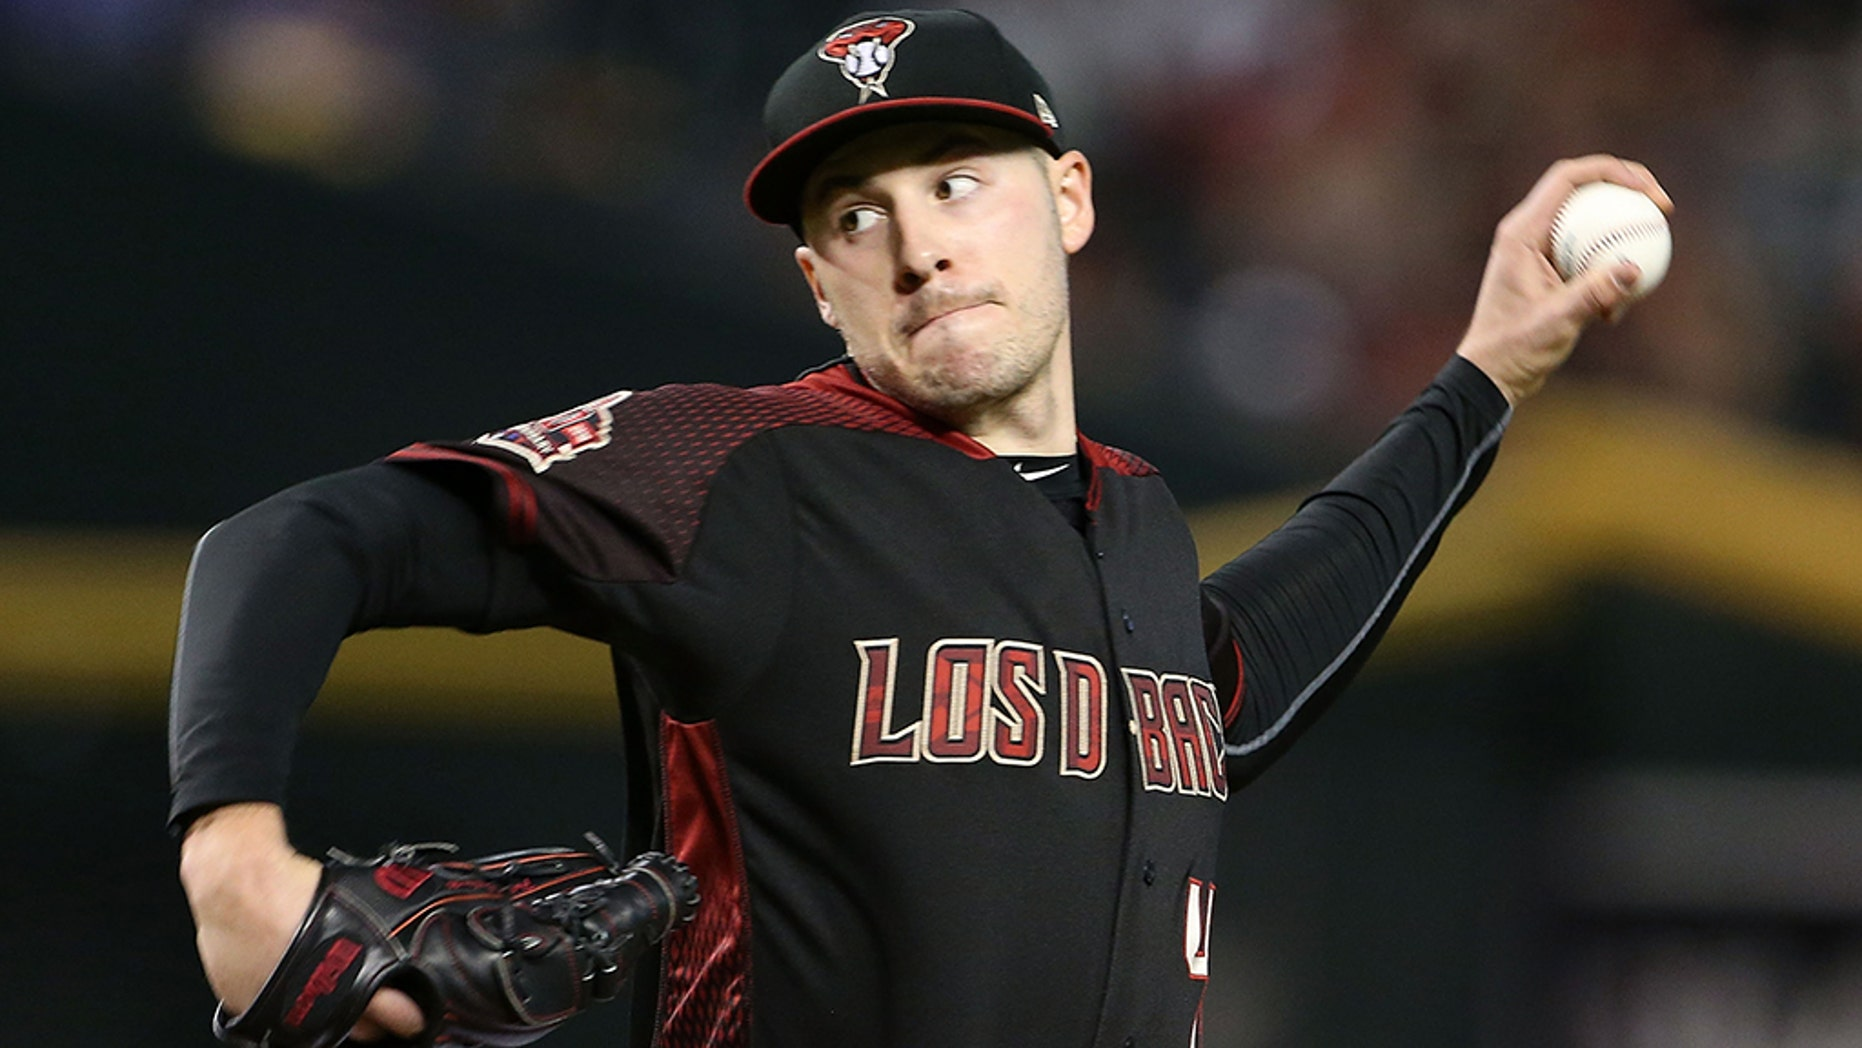 Patrick Corbin is one of this year's hottest free-agent pitchers.